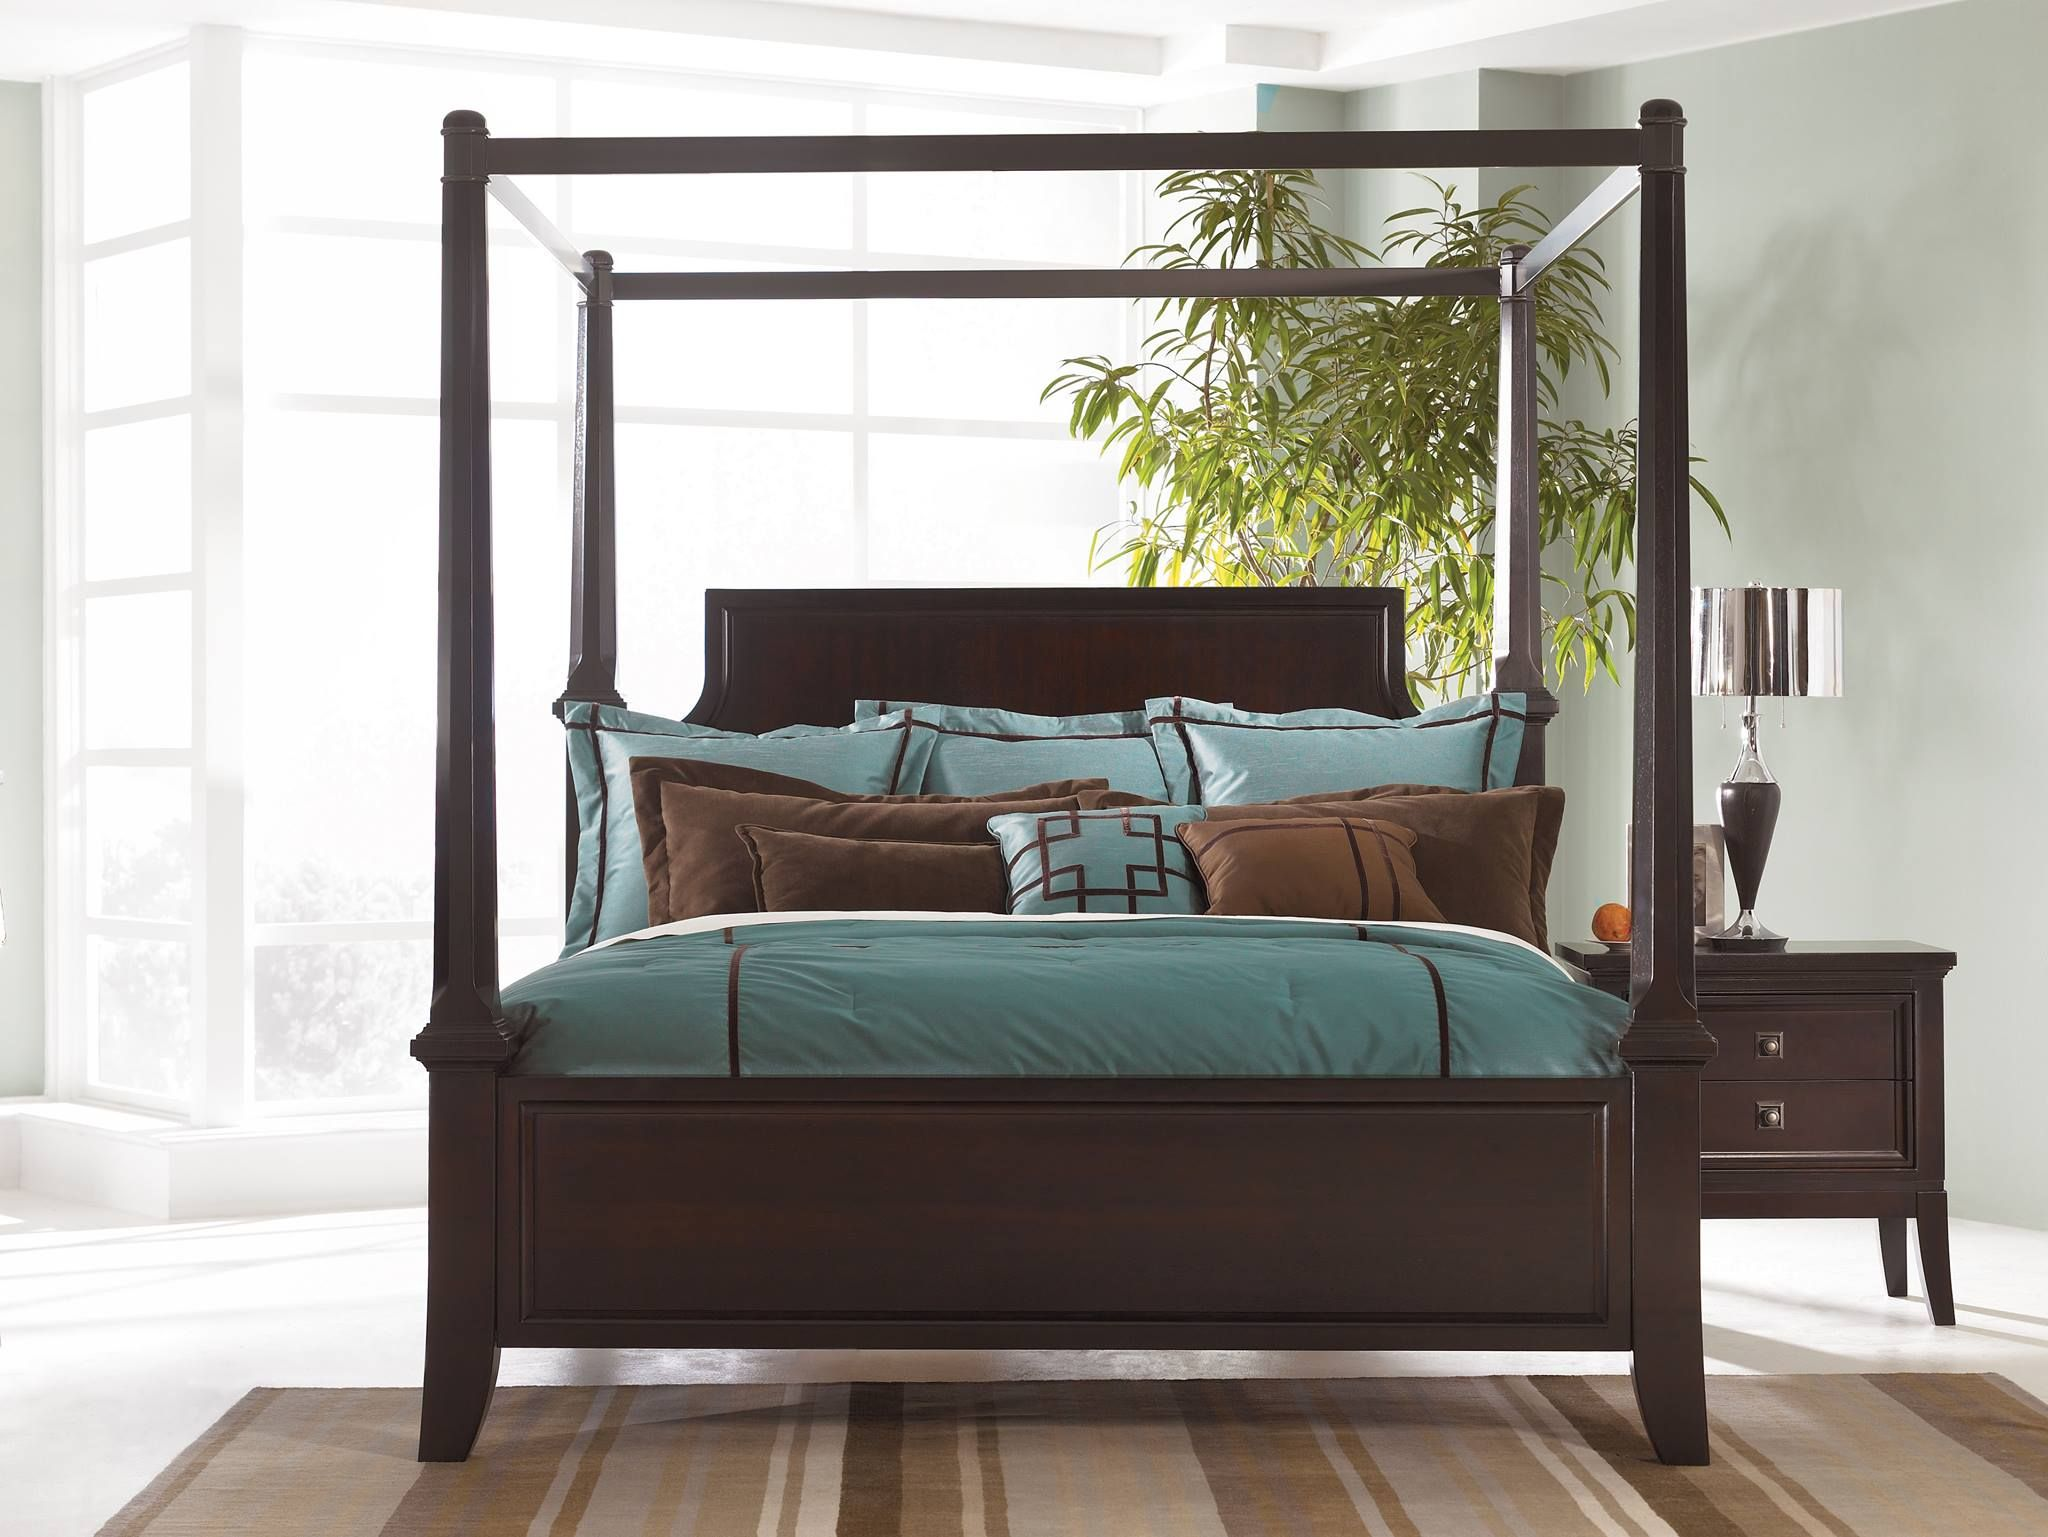 Ashley Furniture HomeStore Canopy bedroom, Queen canopy